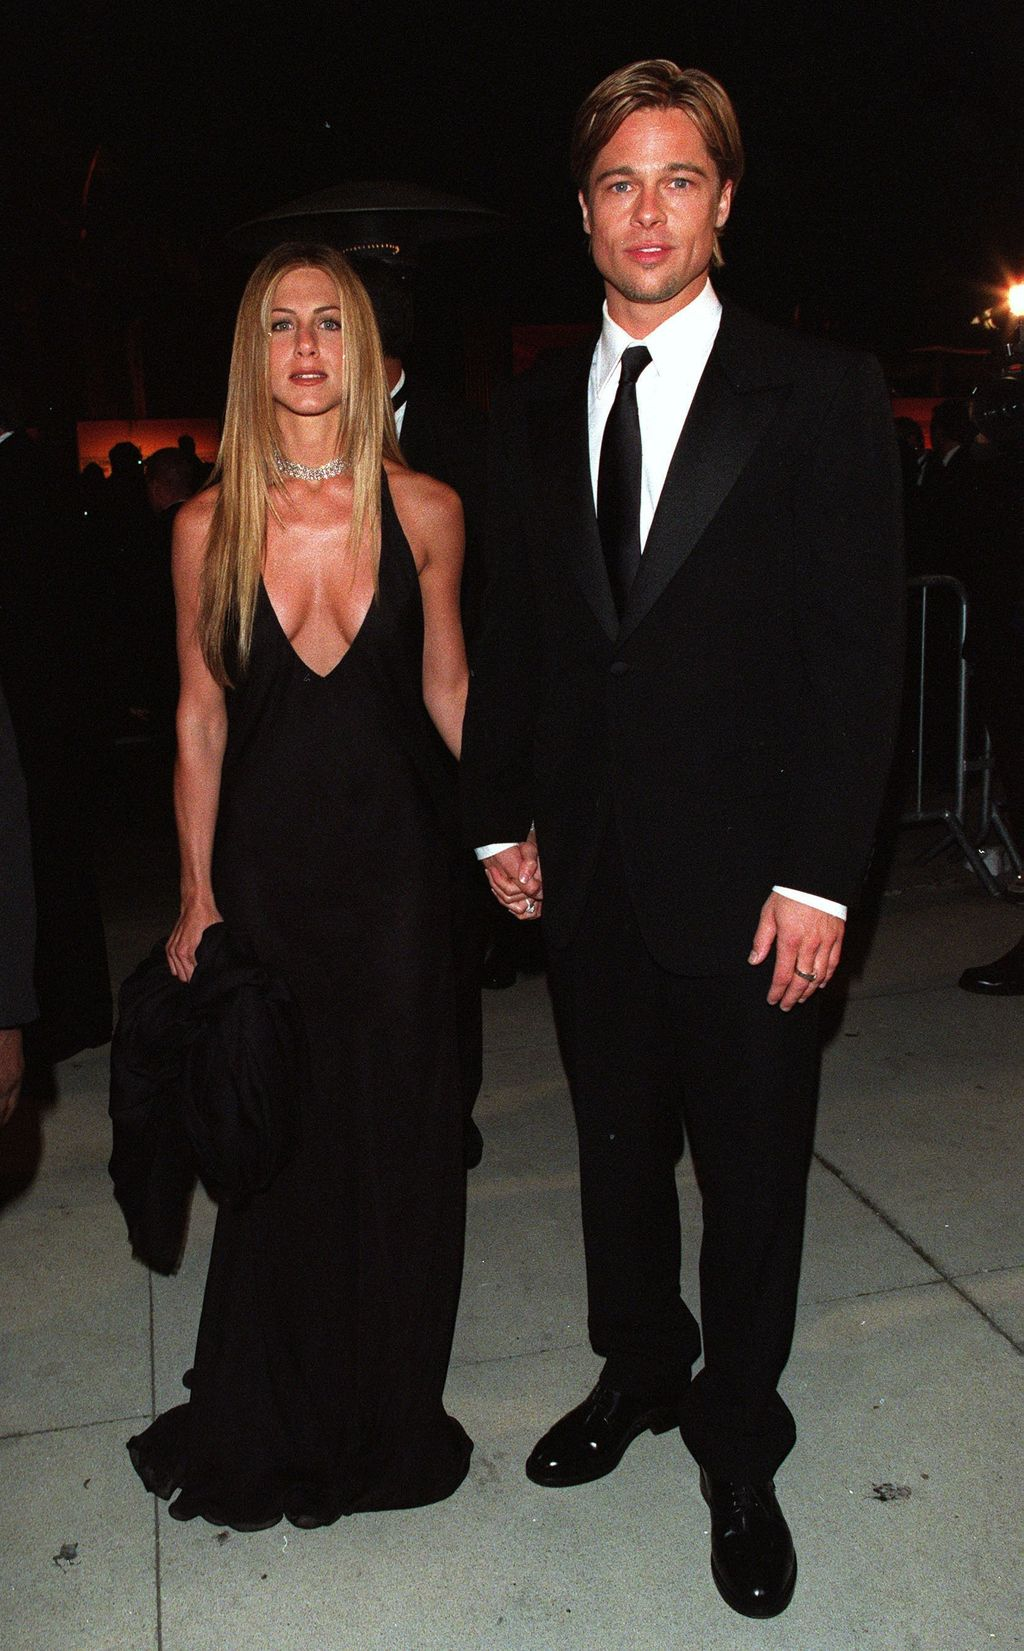 Jennifer Aniston and Brad Pitt at the Vanity Fair Party held at Morton